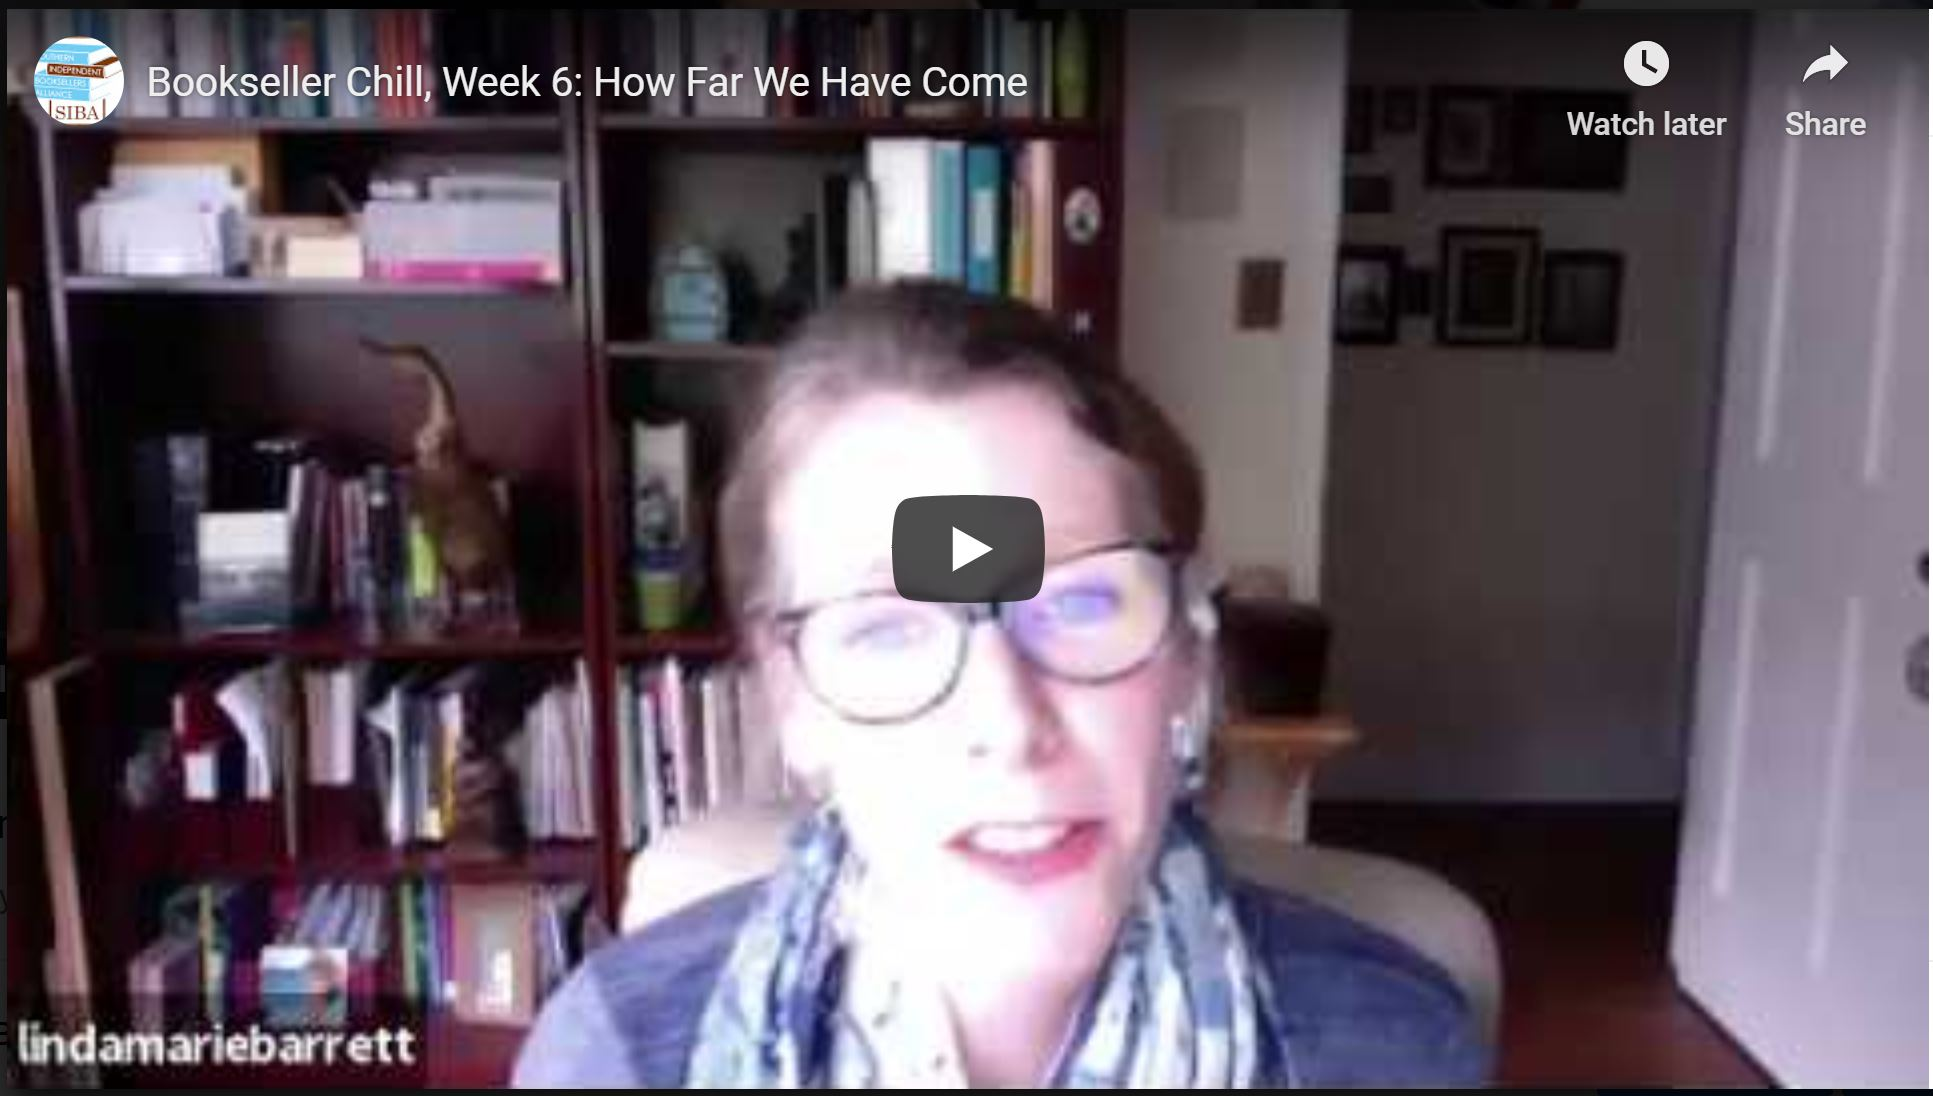 Bookseller Chill, Week 6: How Far We've Come